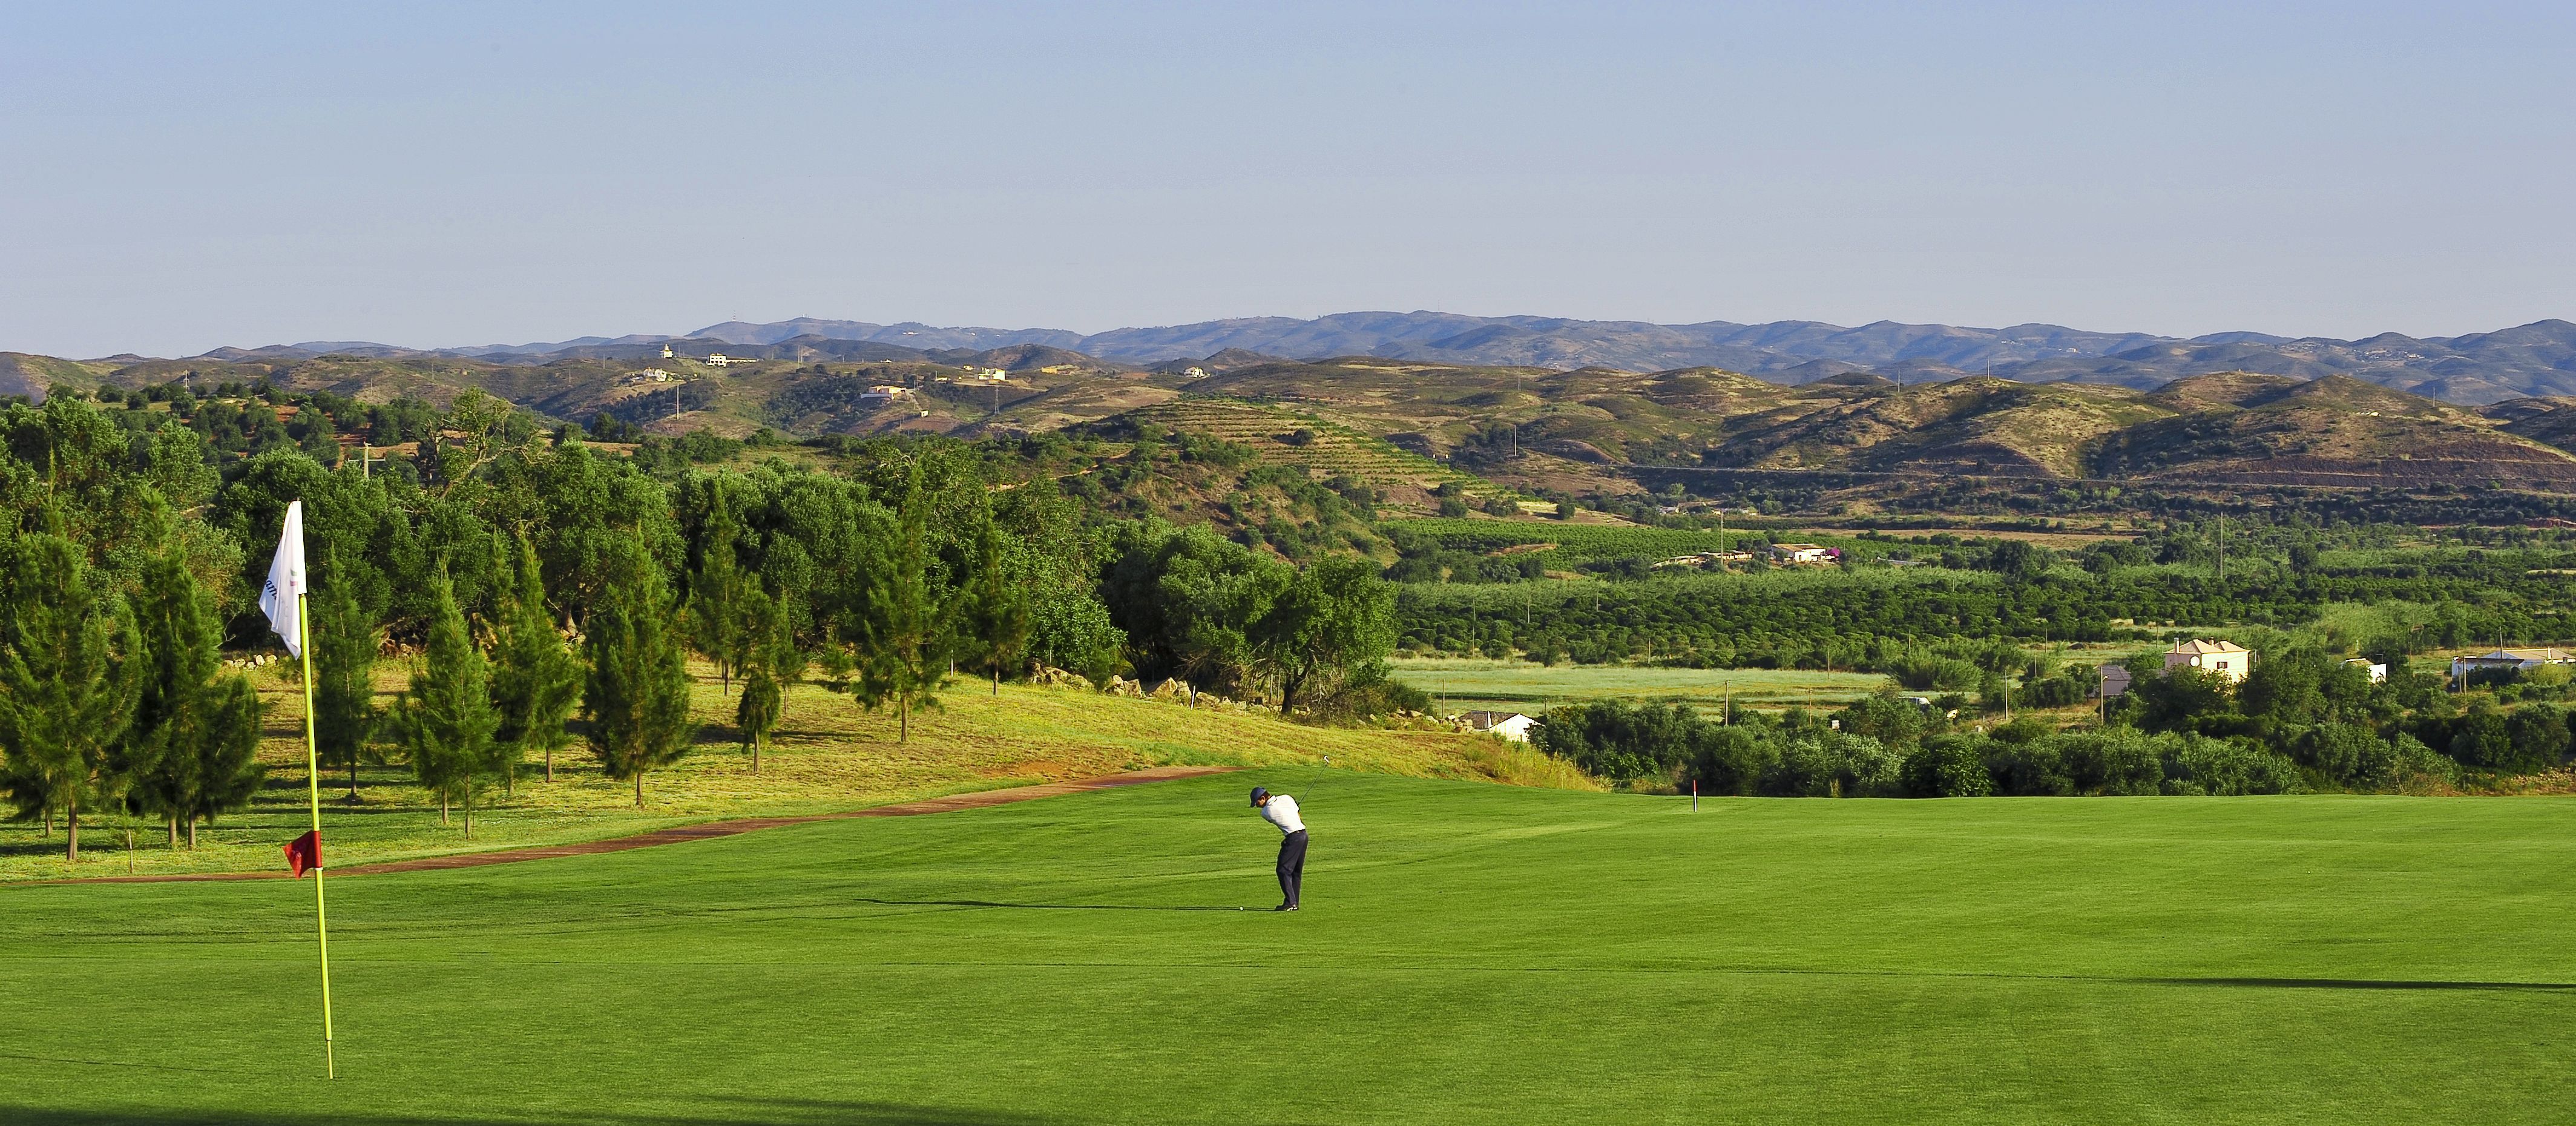 Transfers from Faro Airport to Benamor Golf Course